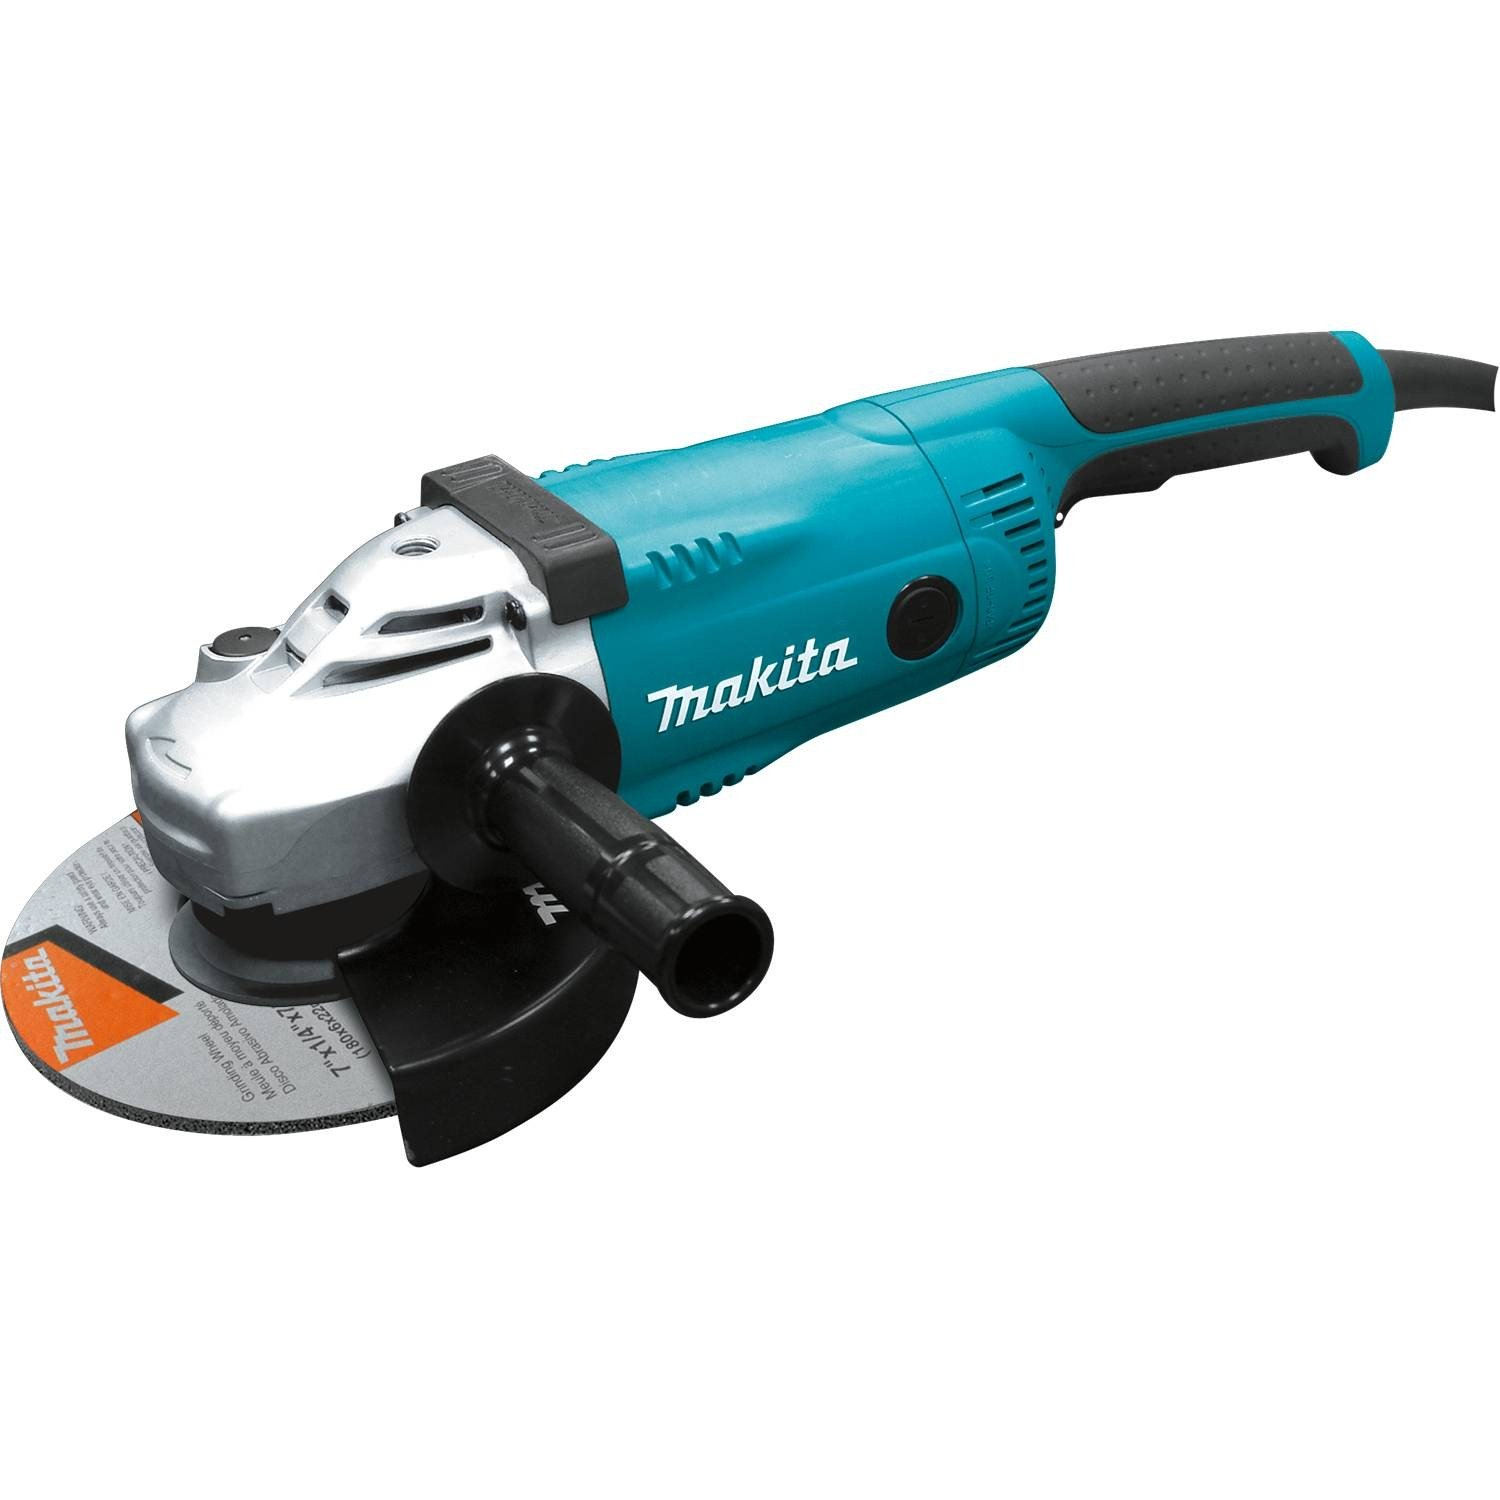 Makita GA7021 7 Angle Grinder, with AC Dc Switch